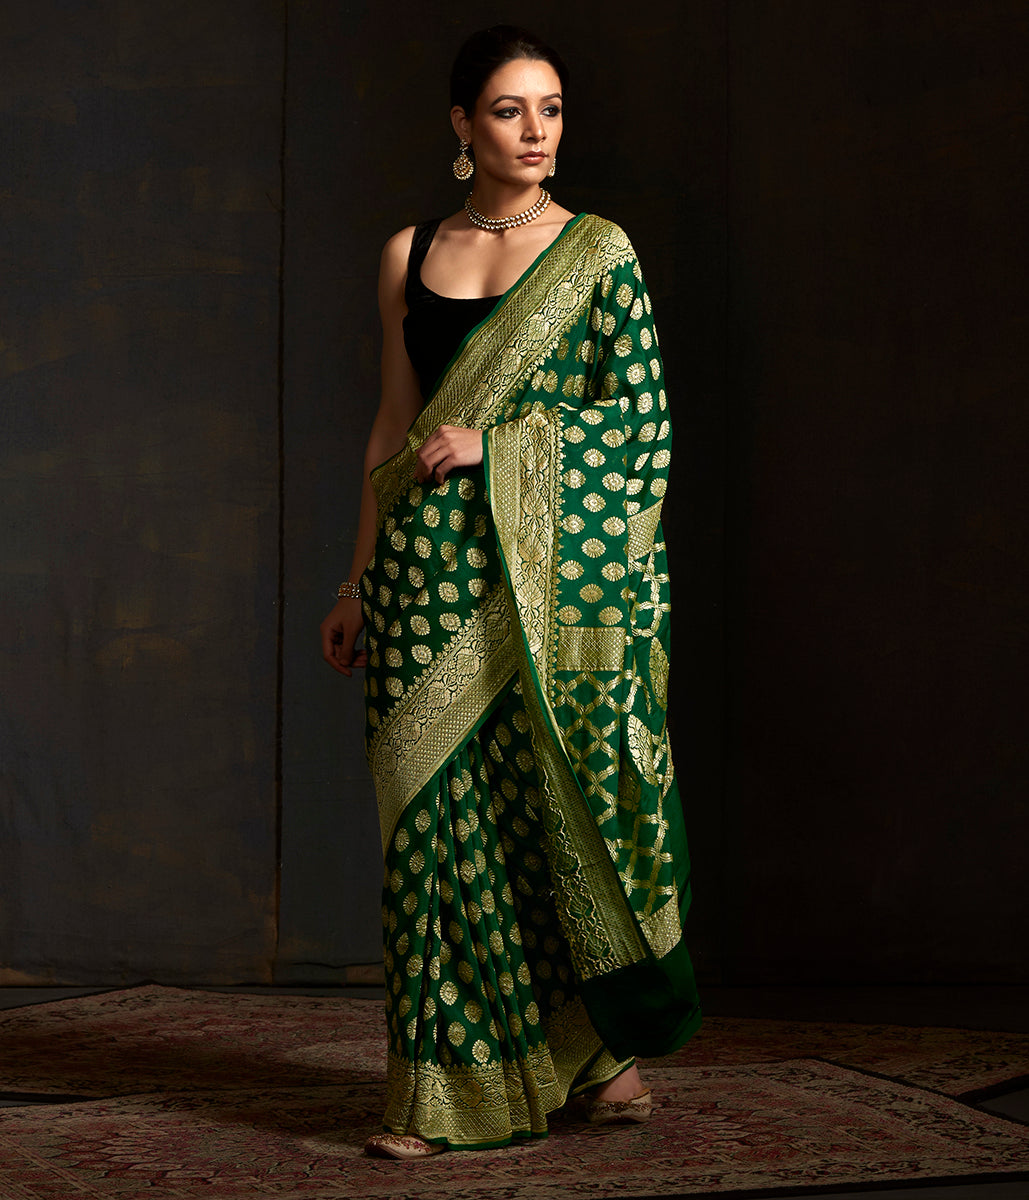 Green banarasi georgette saree with zari motifs